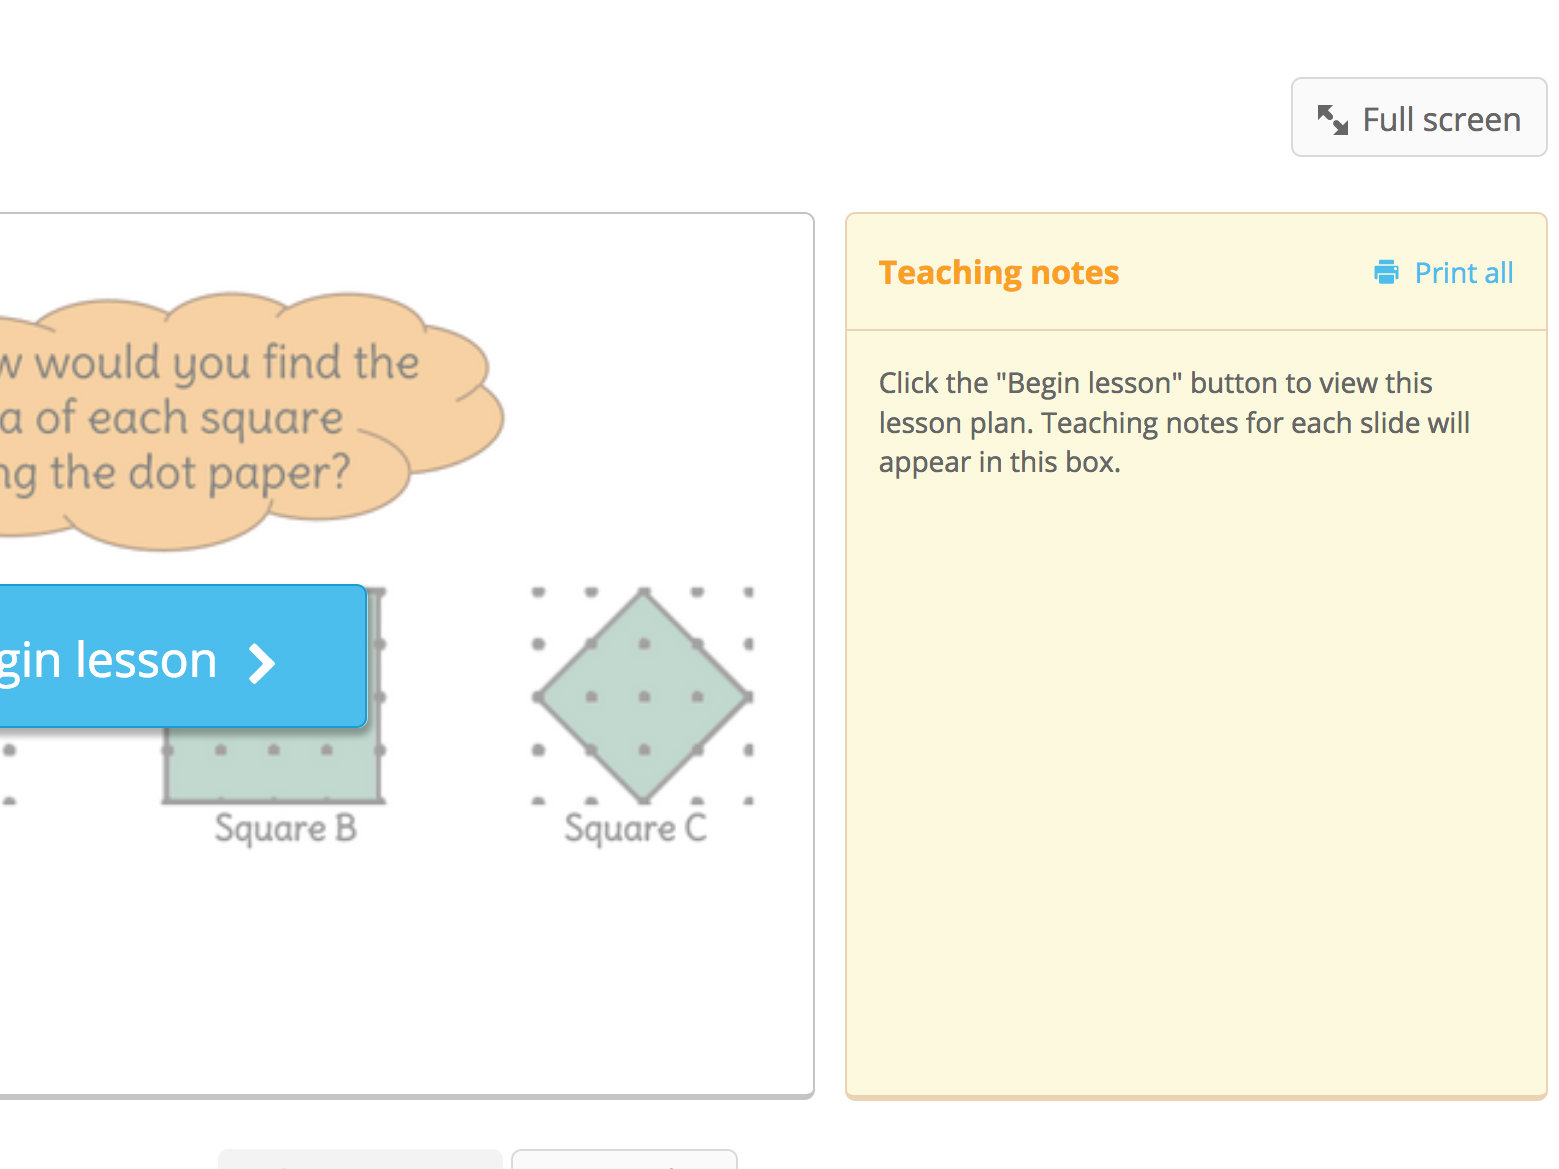 Teaching Presentations Mix Images, Videos, And Stepbystep Instructions  With Teacher's Notes And Additional Resources